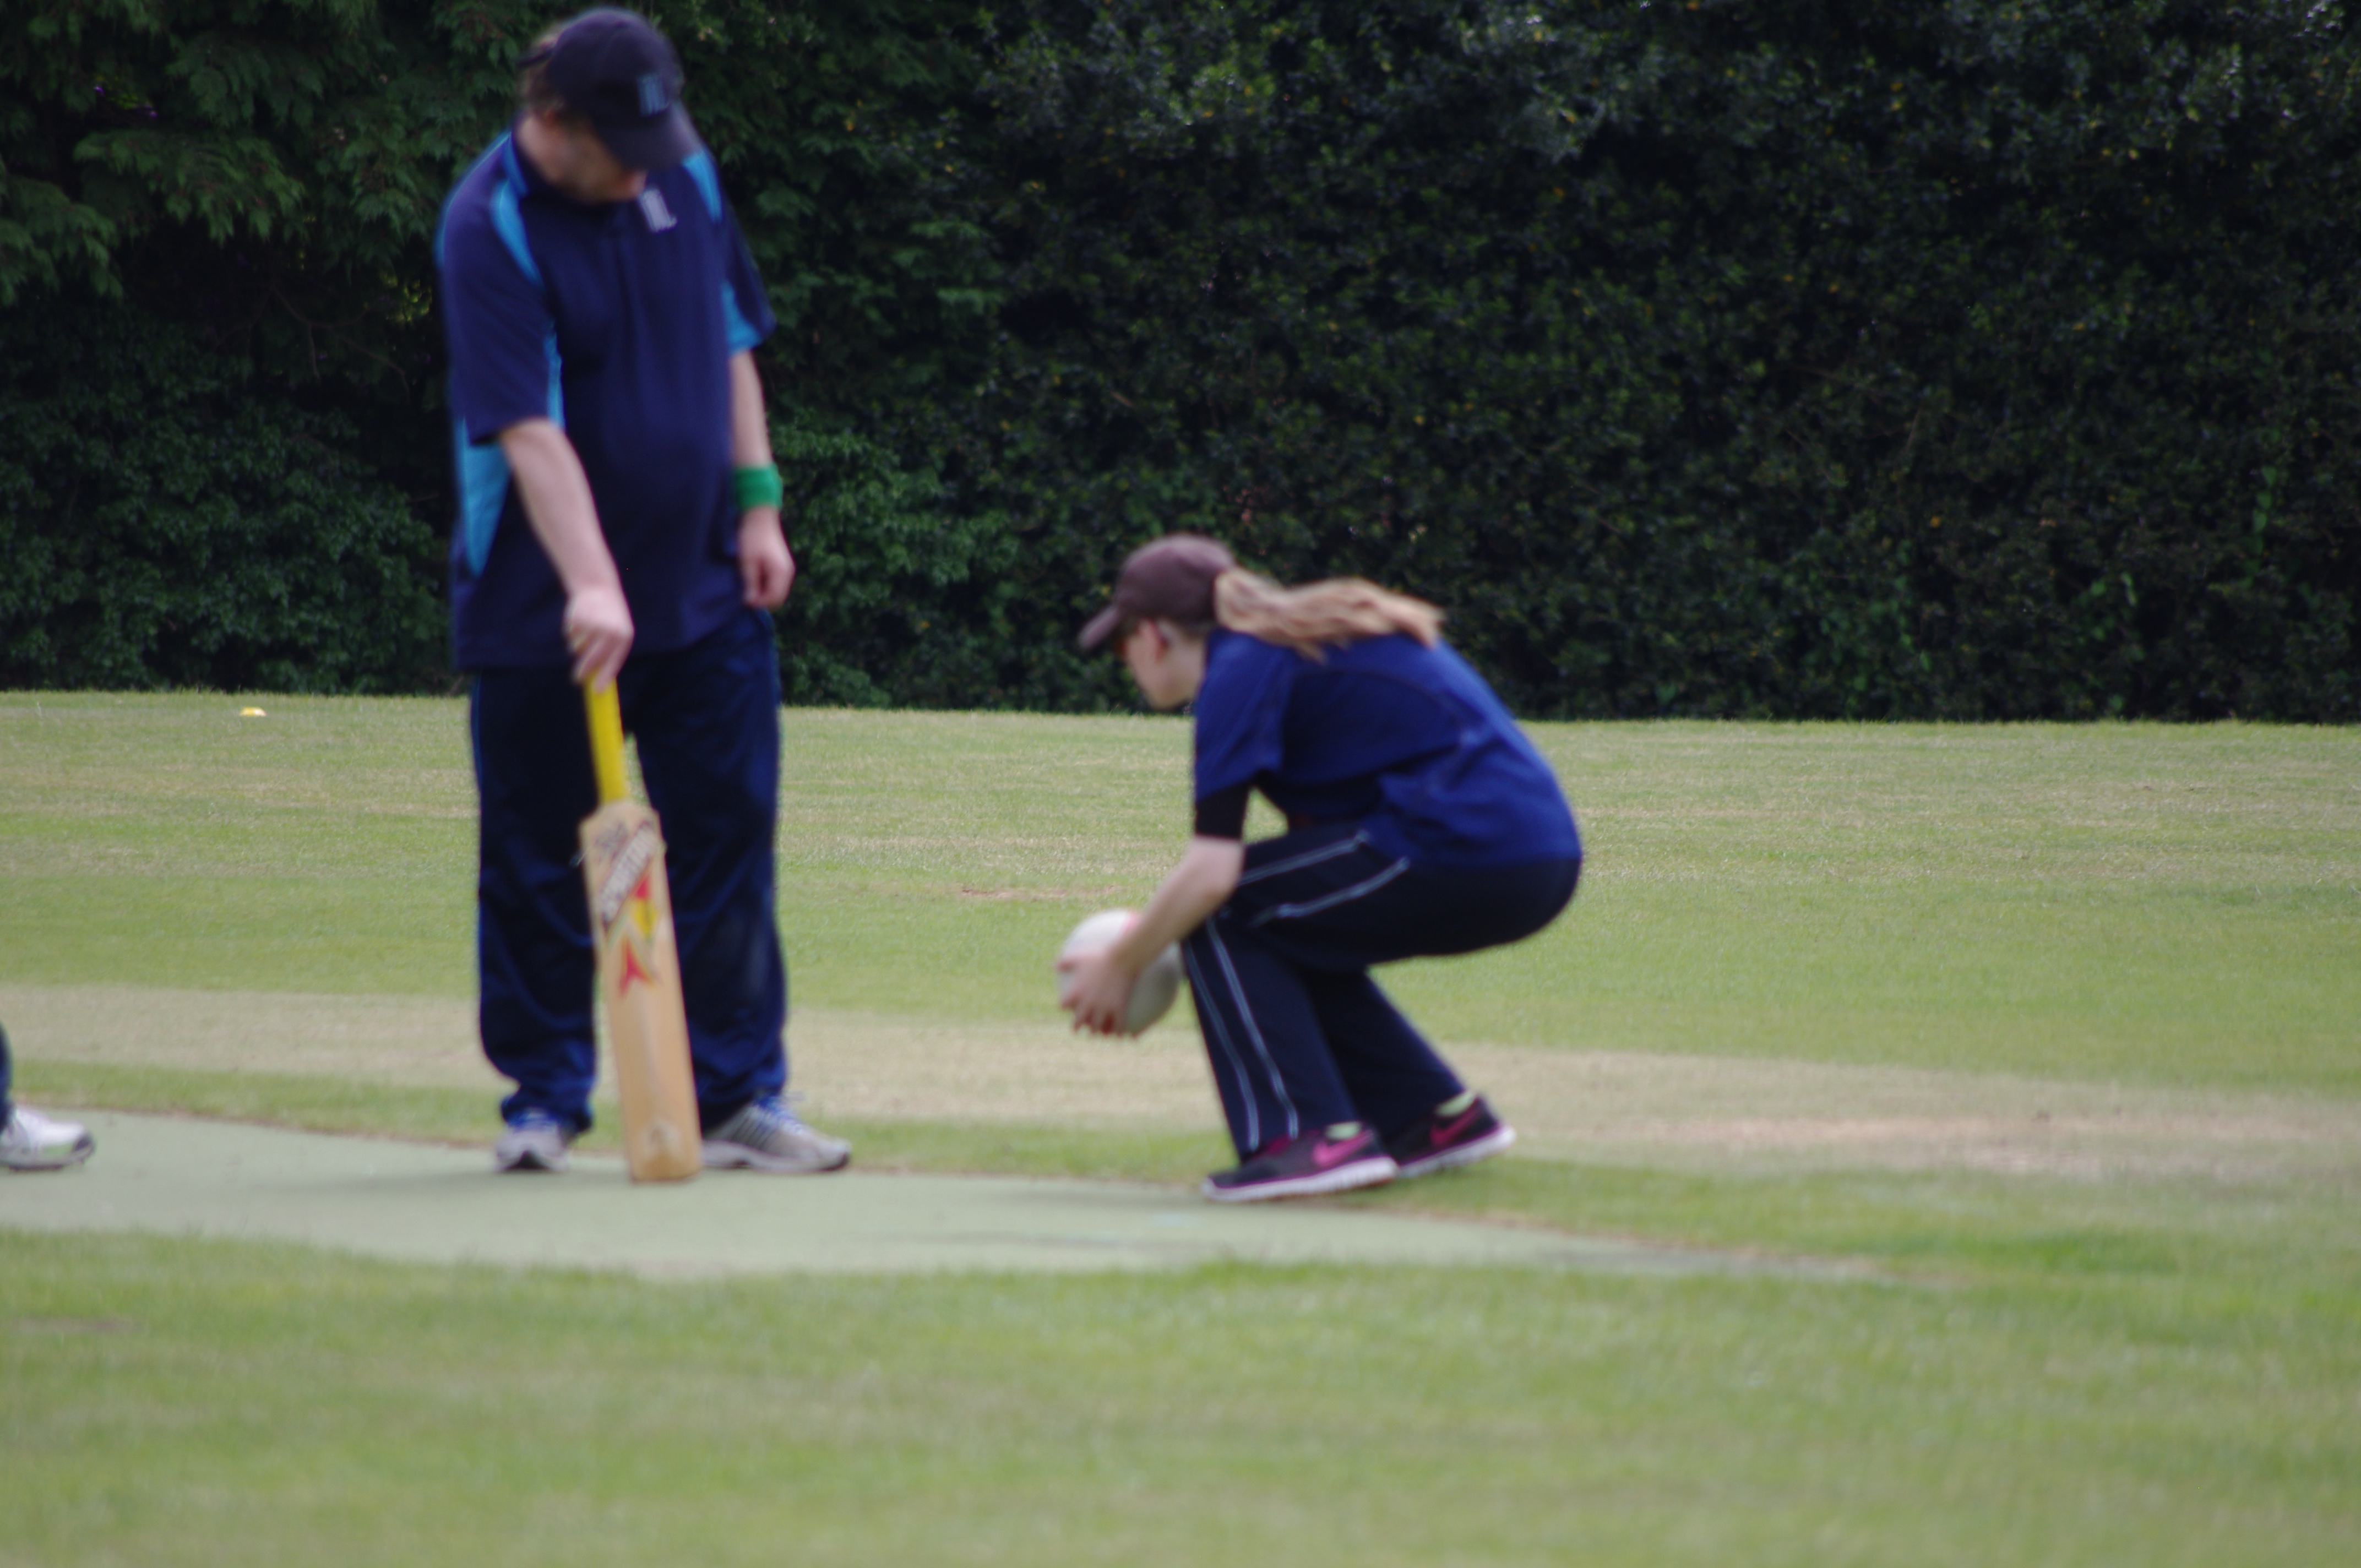 Leanne on the cricket ground